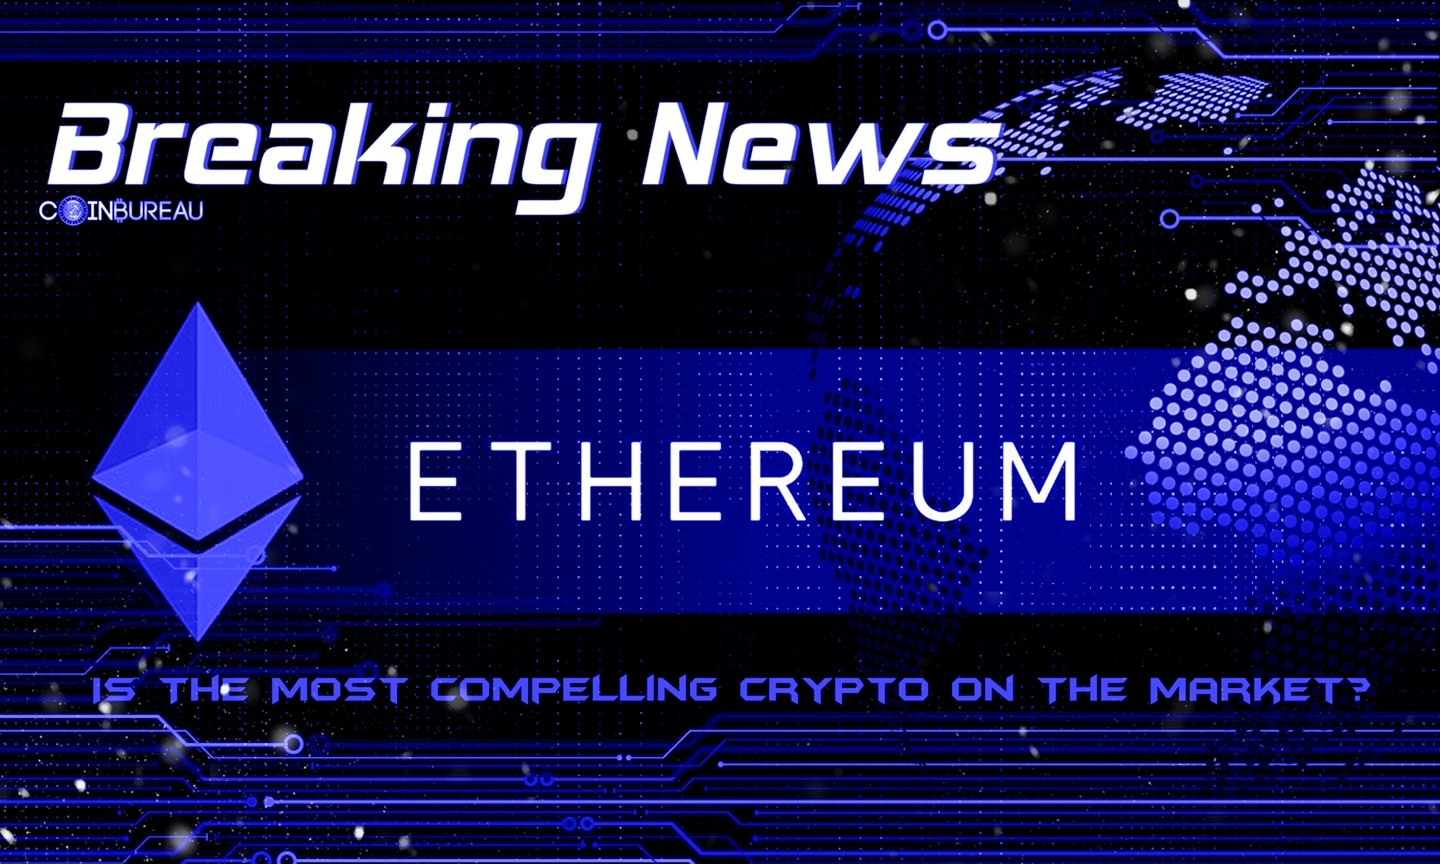 Why Institutions Think Ethereum Is The Most Compelling Crypto On The Market